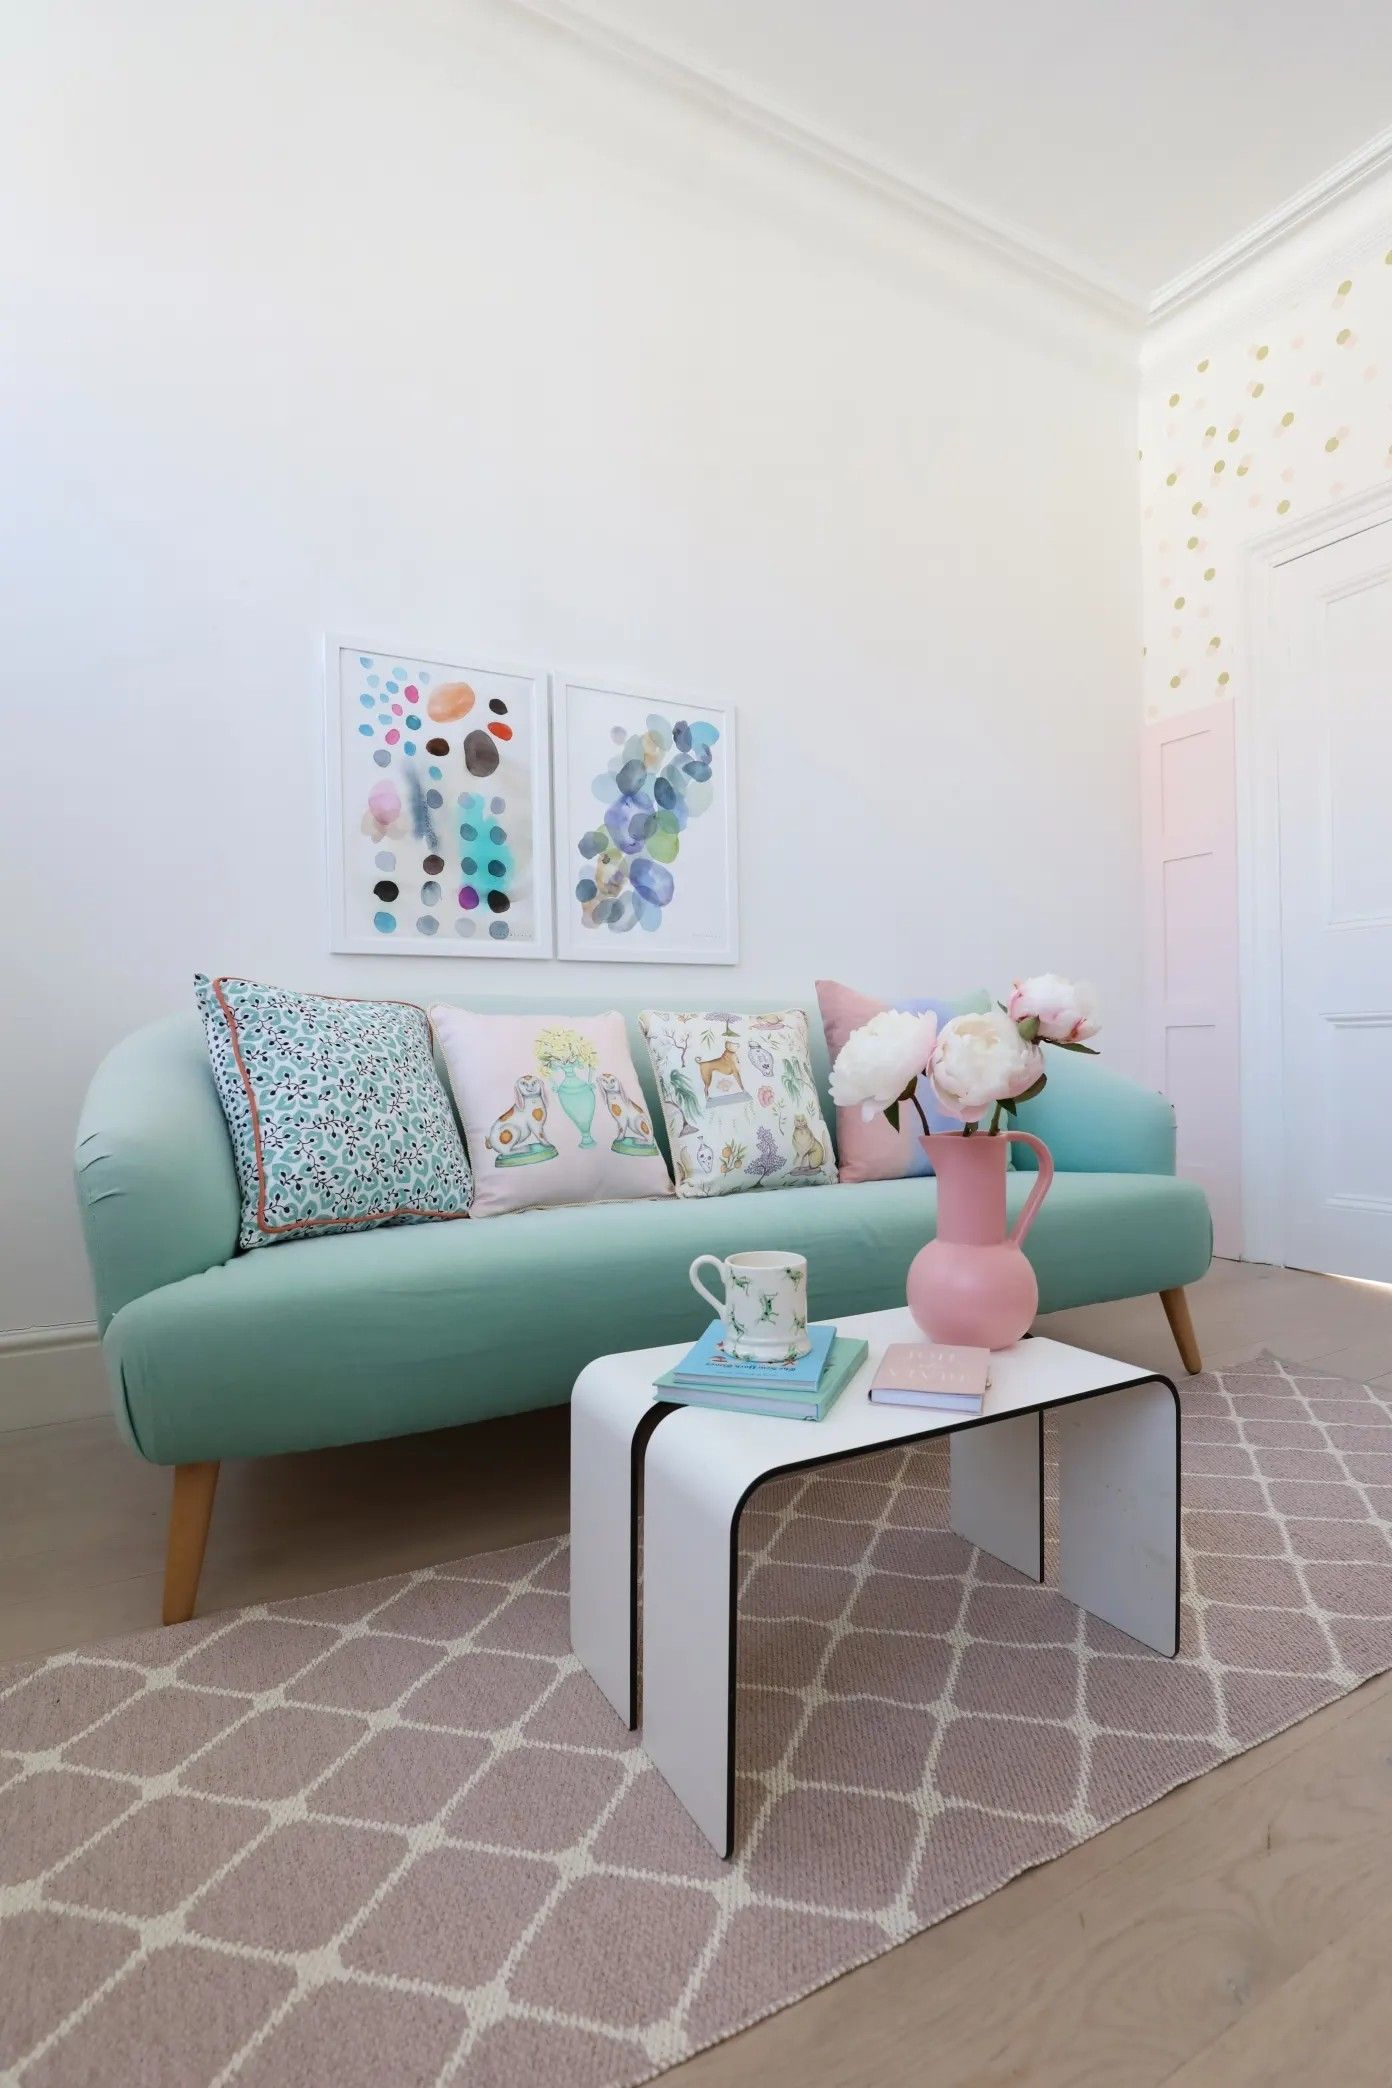 Pin by Olivia Williams on Living Room   Pastel home decor, Pastel ...